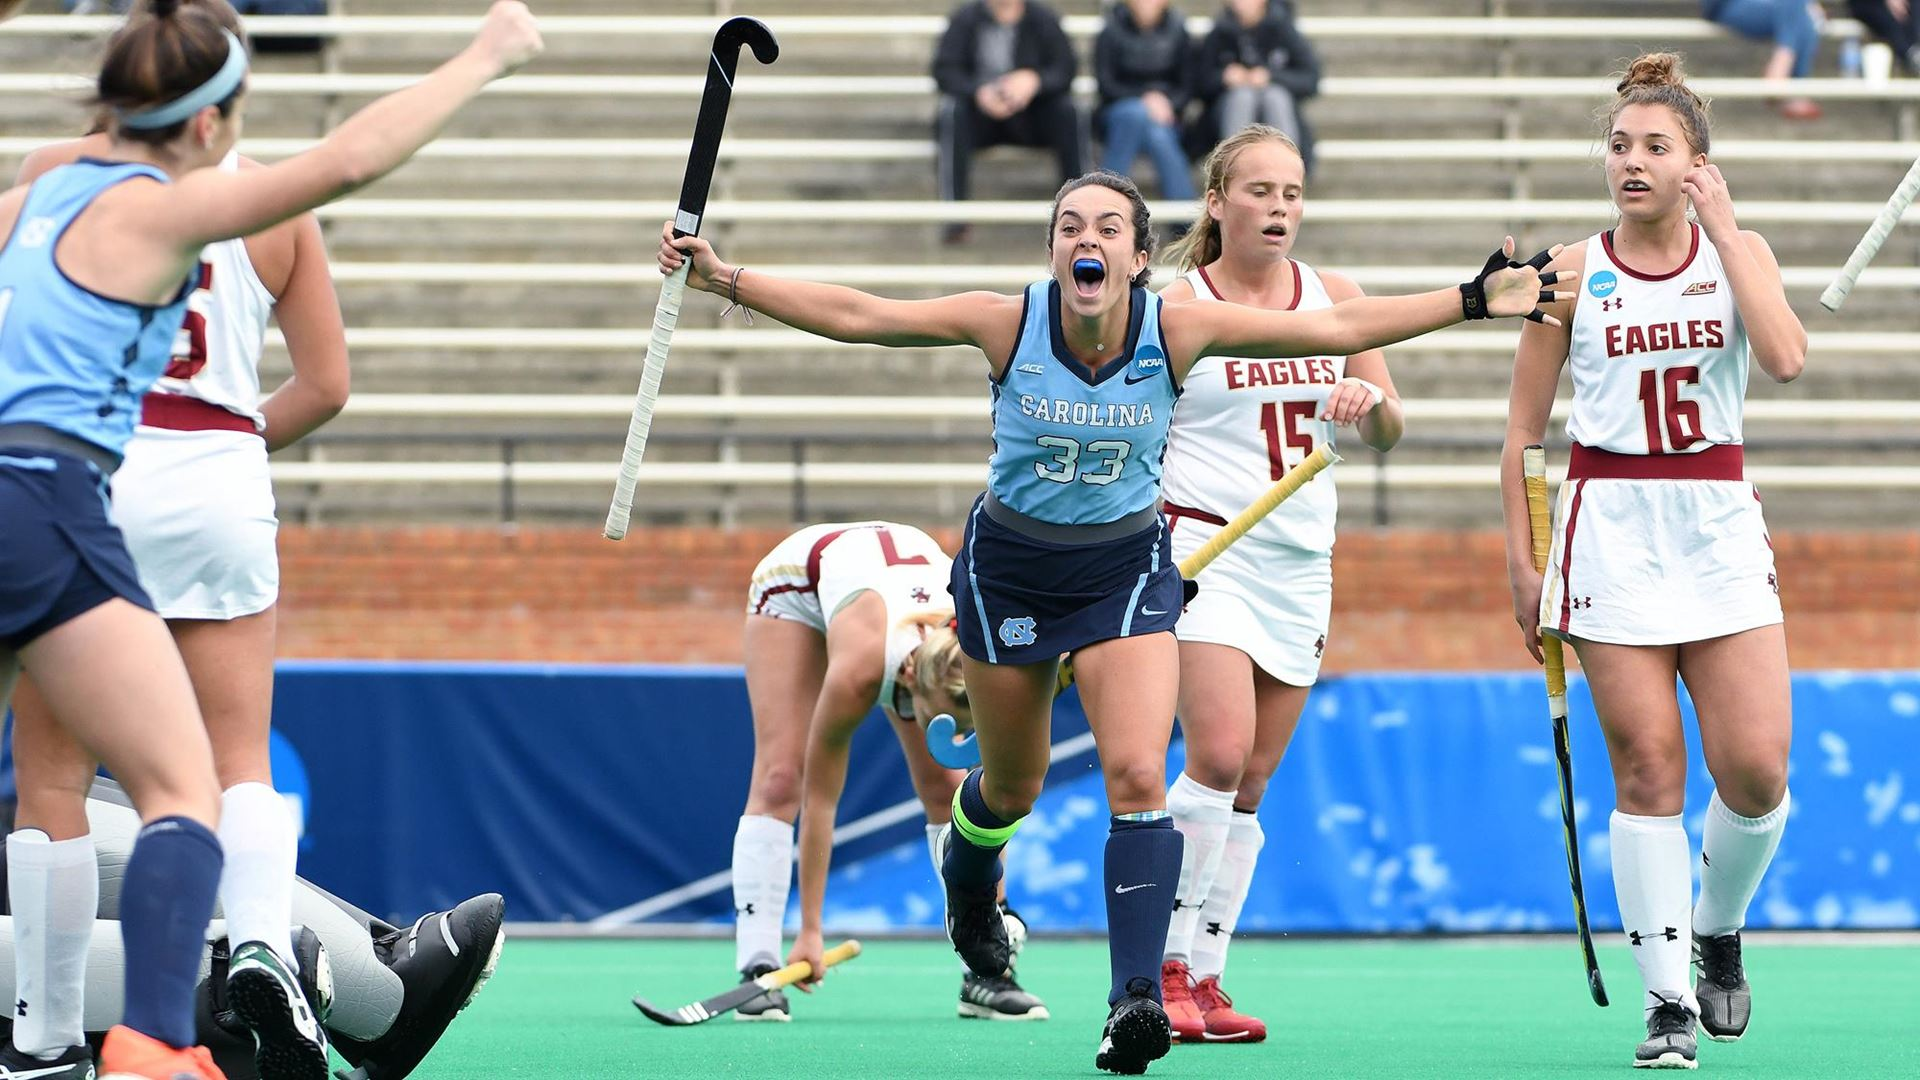 No 1 Unc Field Hockey Defeats Boston College Advances To Ncaa Championship Game Chapelboro Com